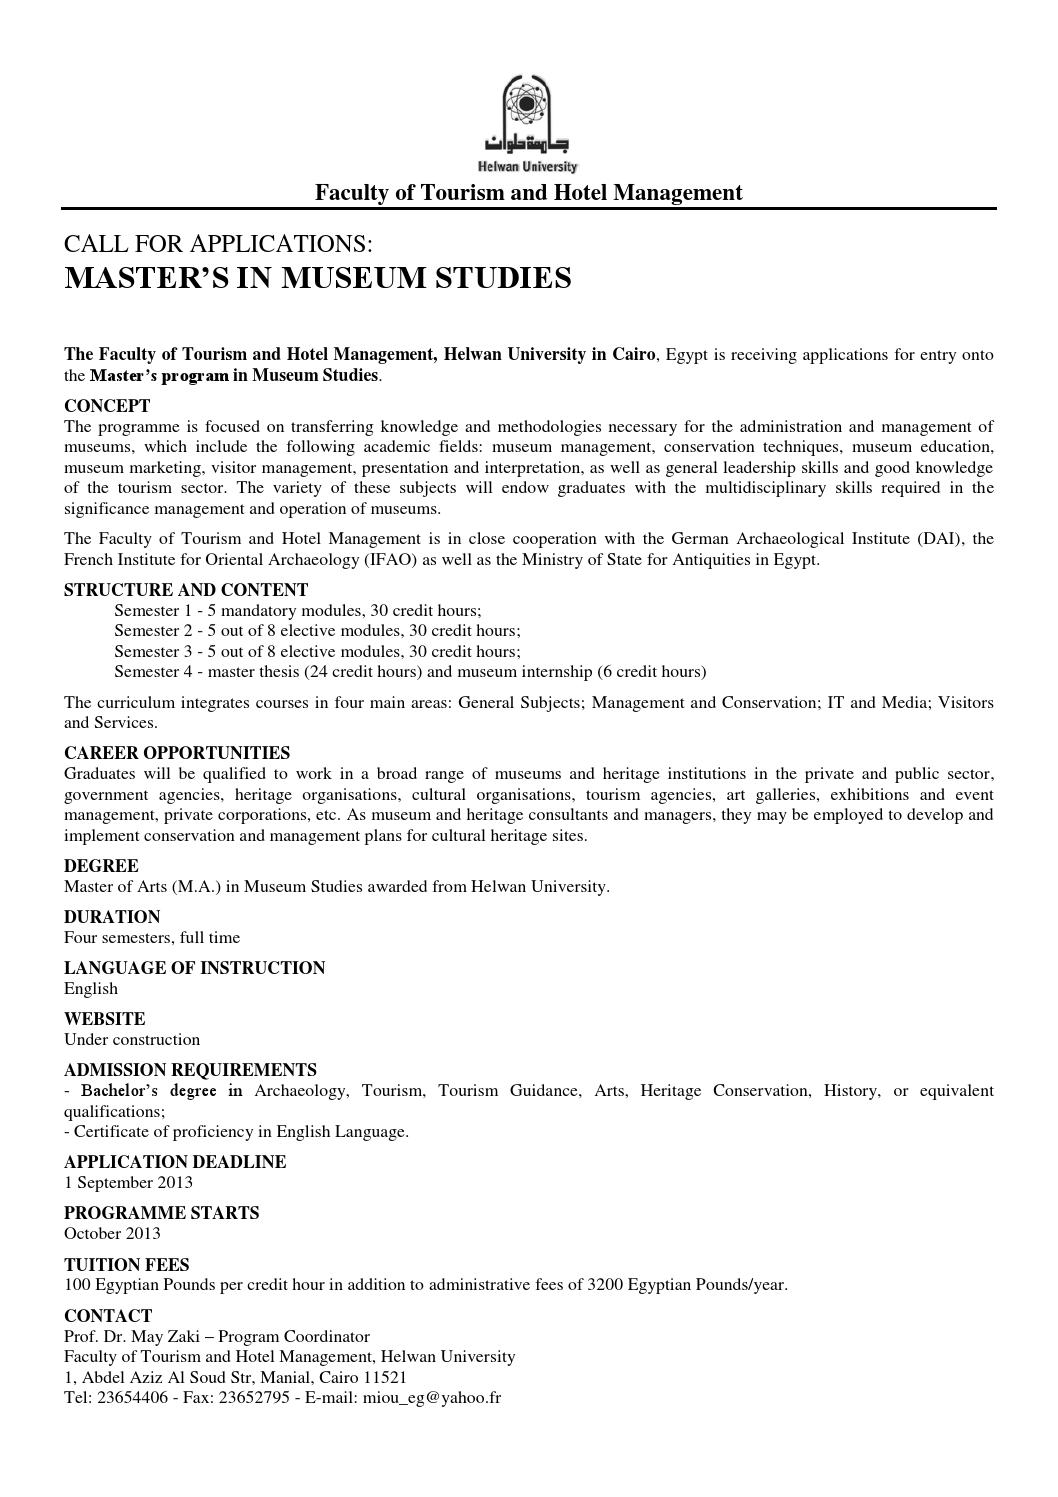 Call for applications masters in museum studies one page by fth hu call for applications masters in museum studies one page by fth hu issuu xflitez Gallery